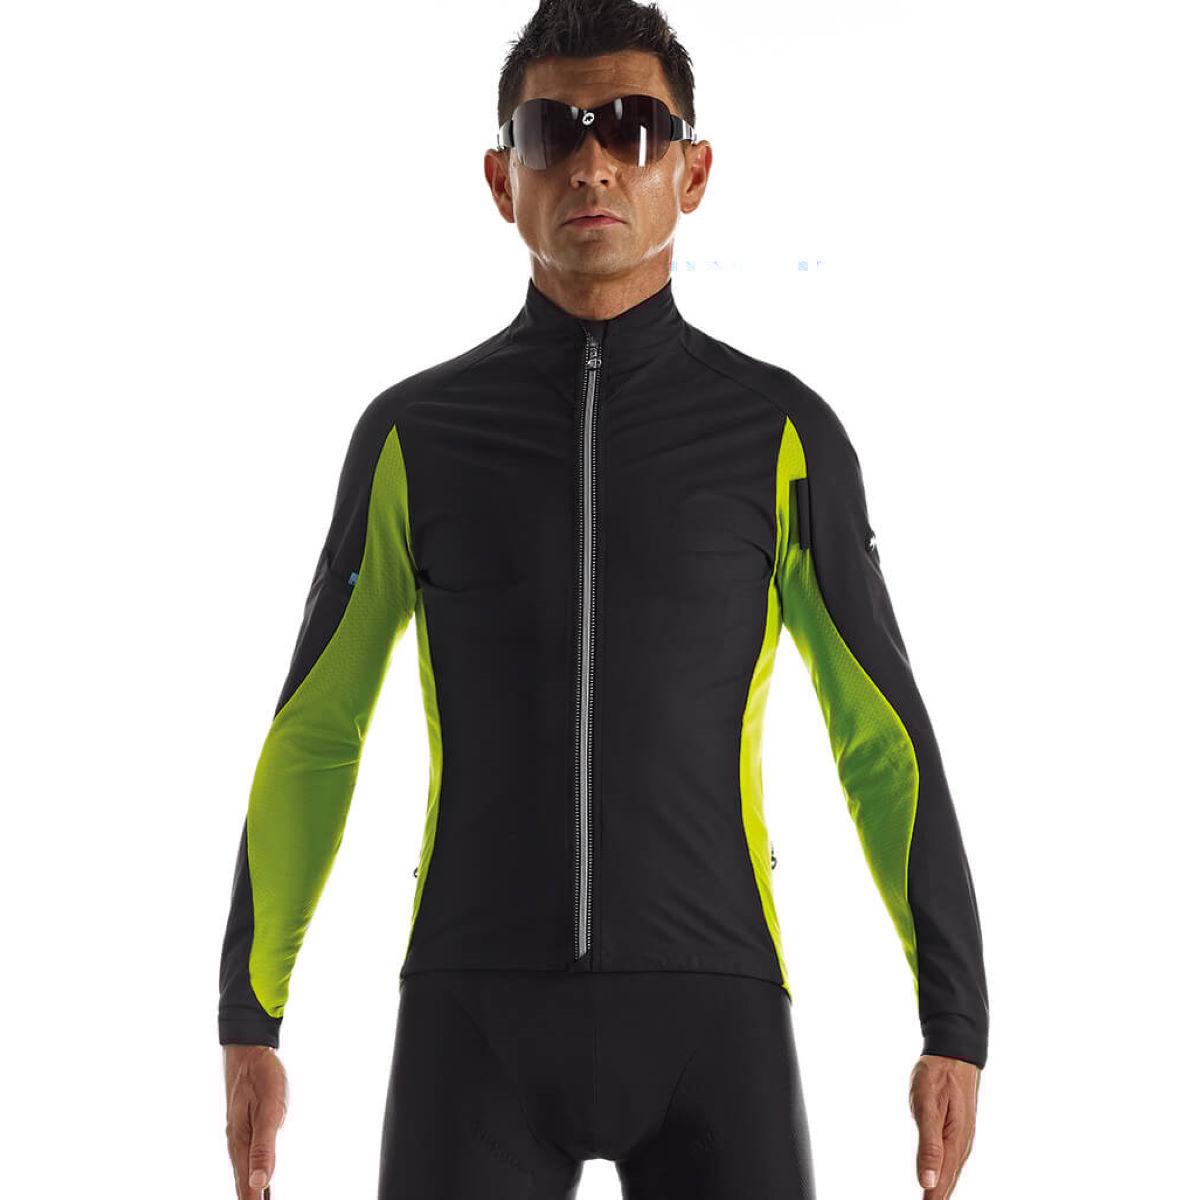 Veste coupe-vent Assos iJ.HaBu5 - Small Piton Green Coupe-vents vélo